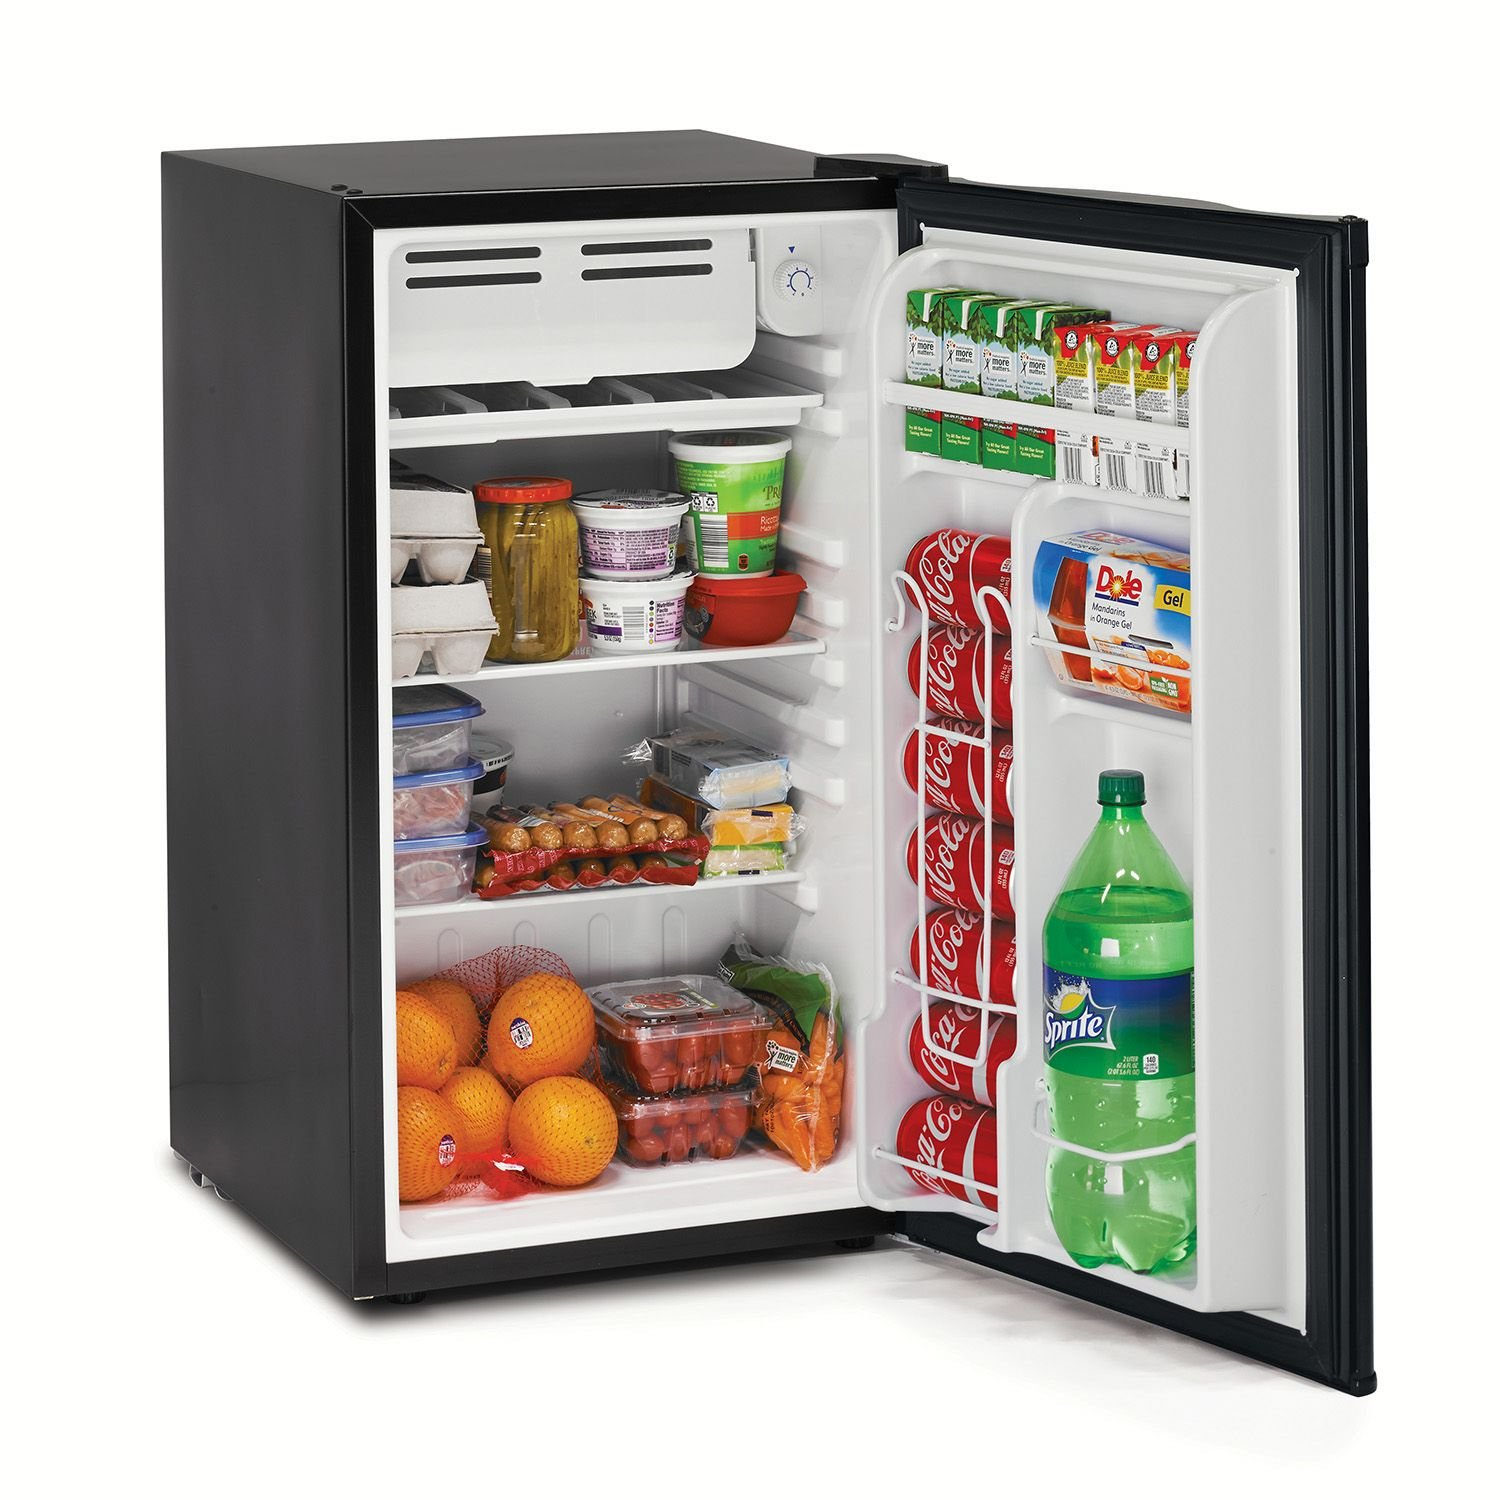 office mini refrigerator. Ft. Compact Refrigerator: Appliances Office Mini Refrigerator C